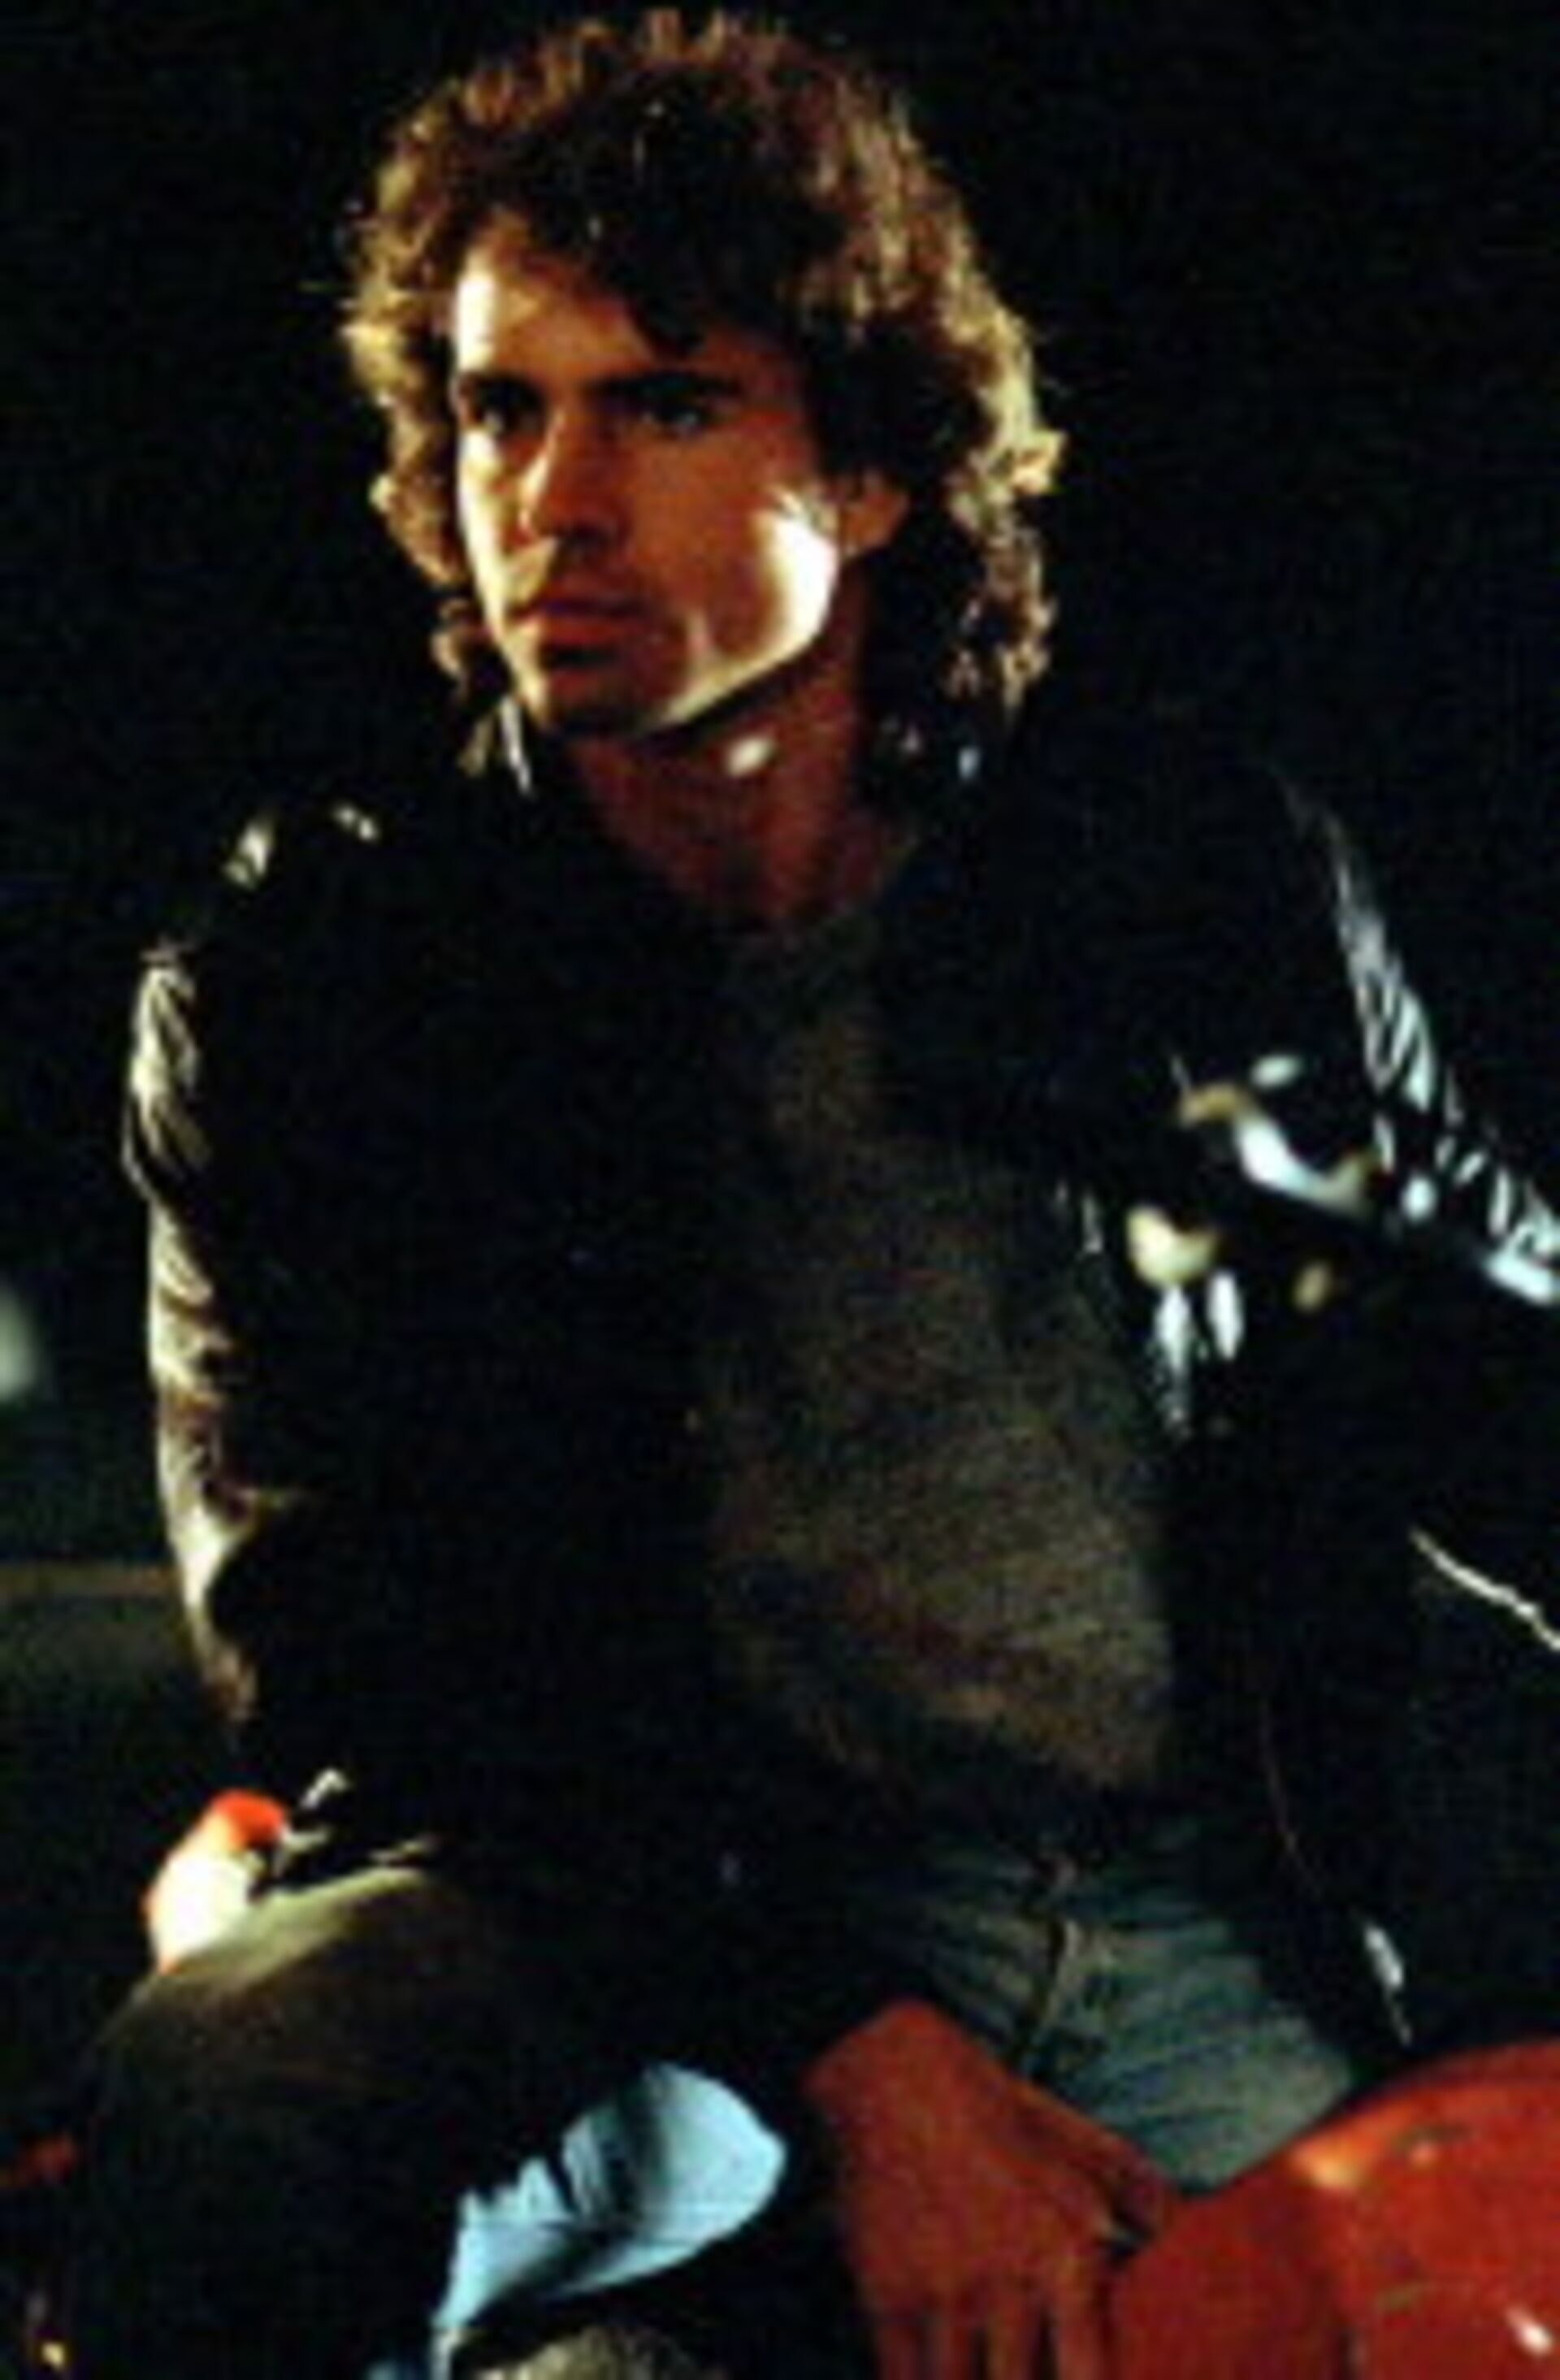 The Lost Boys - Image 13